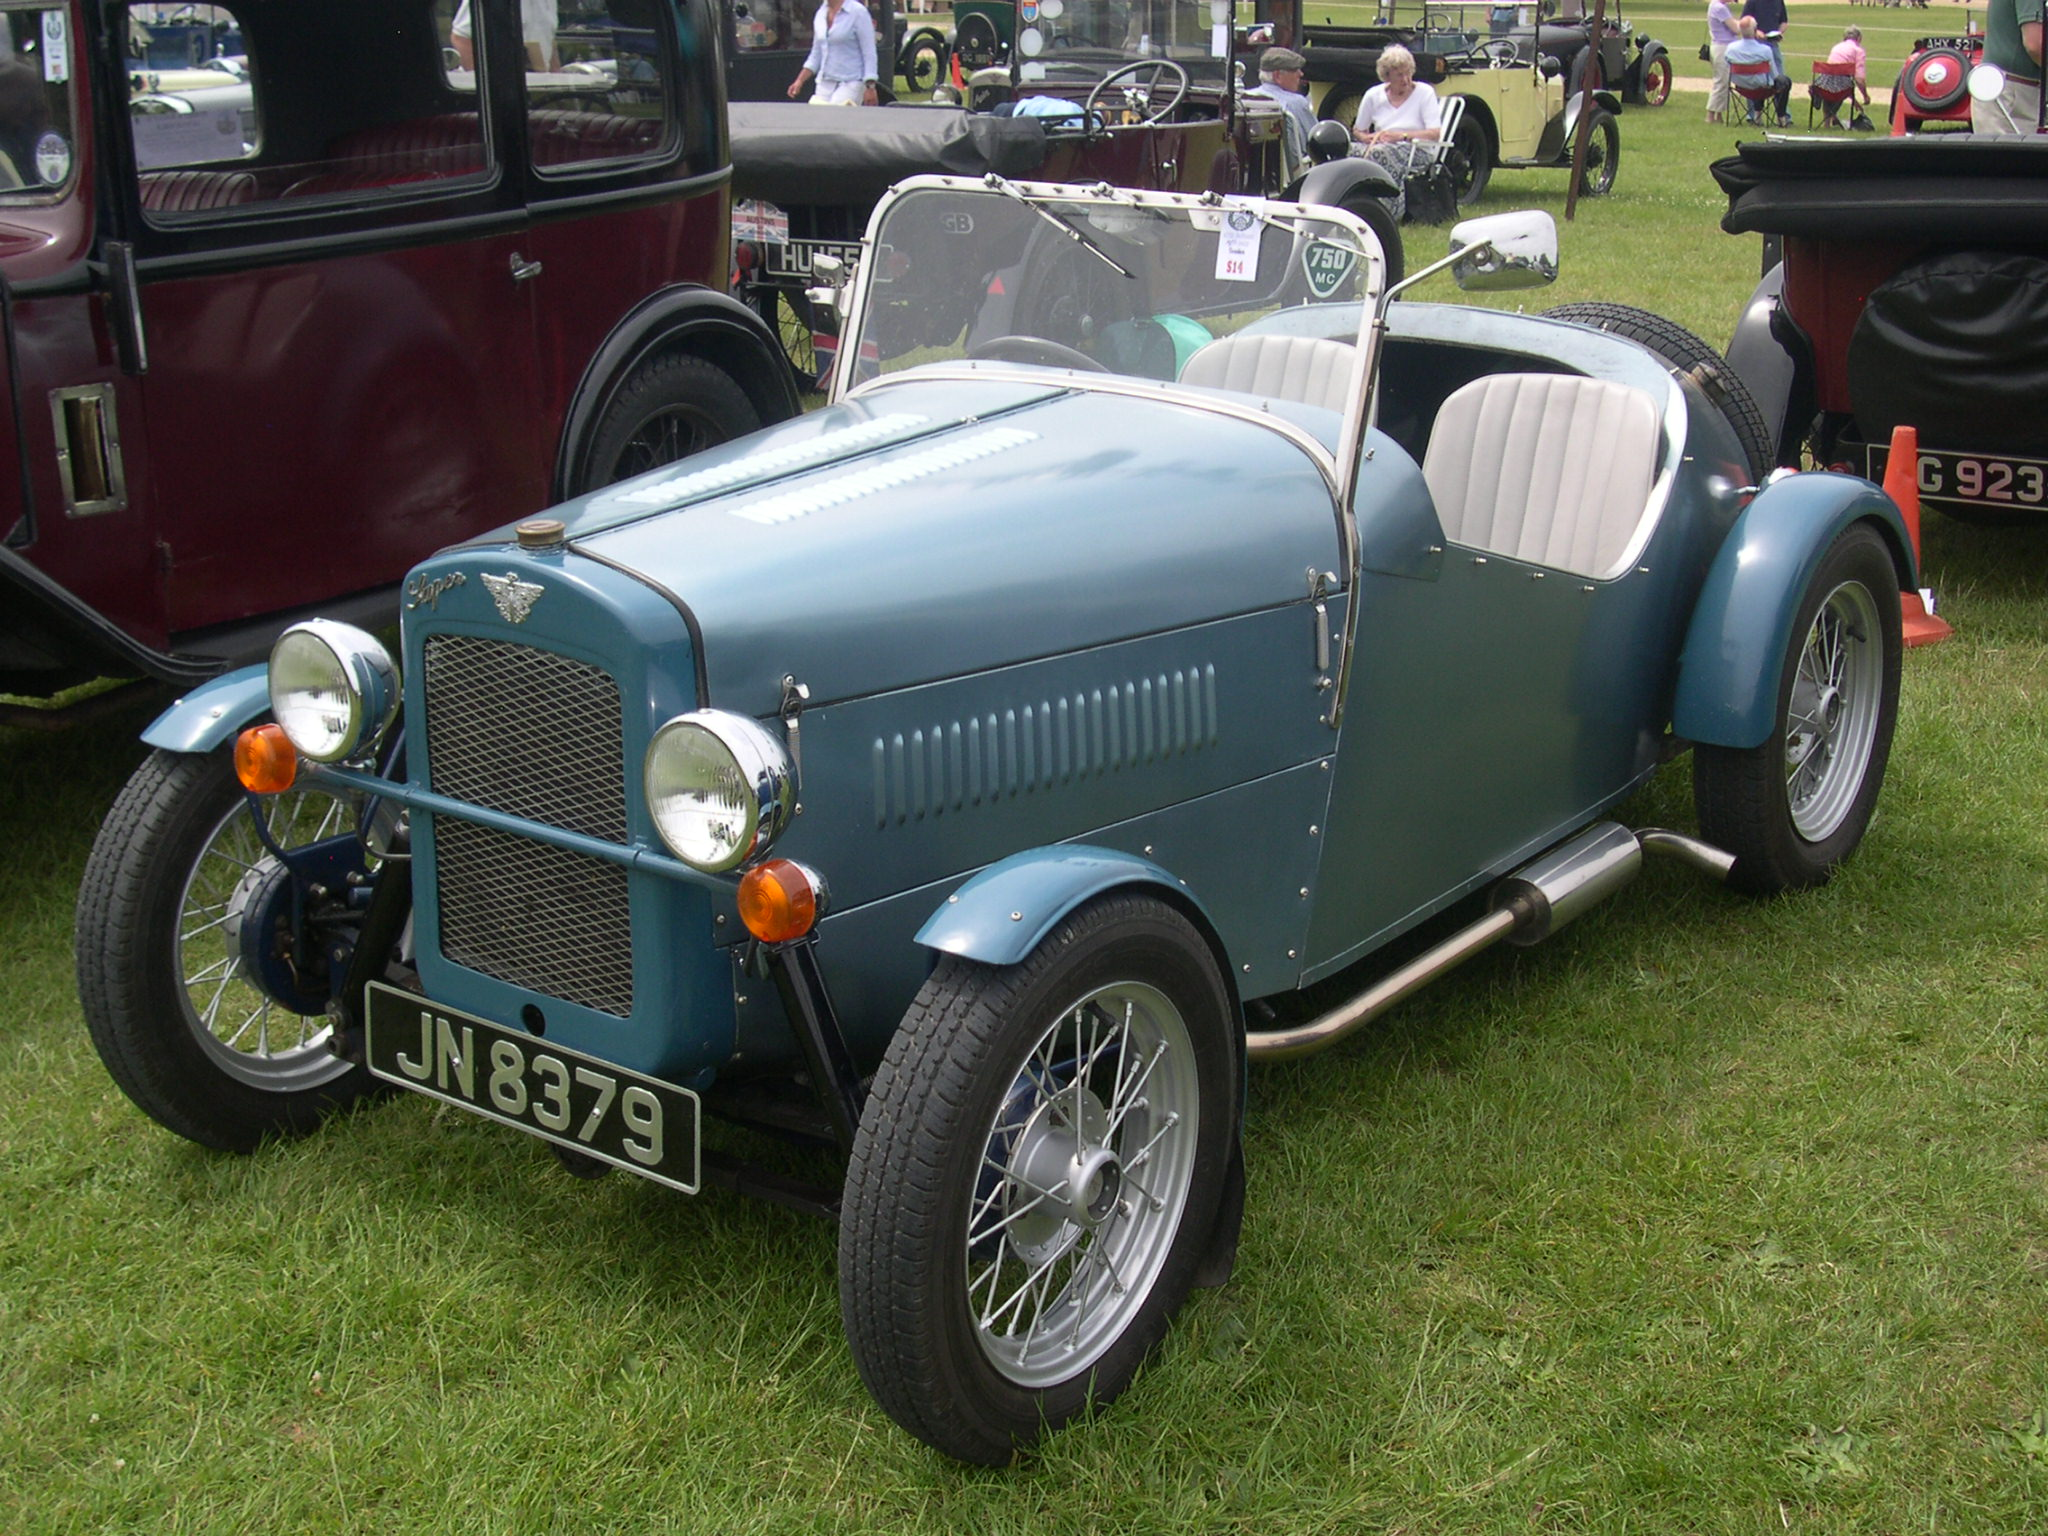 1937 Austin 7 Super Accessories Special | Flickr - Photo Sharing!